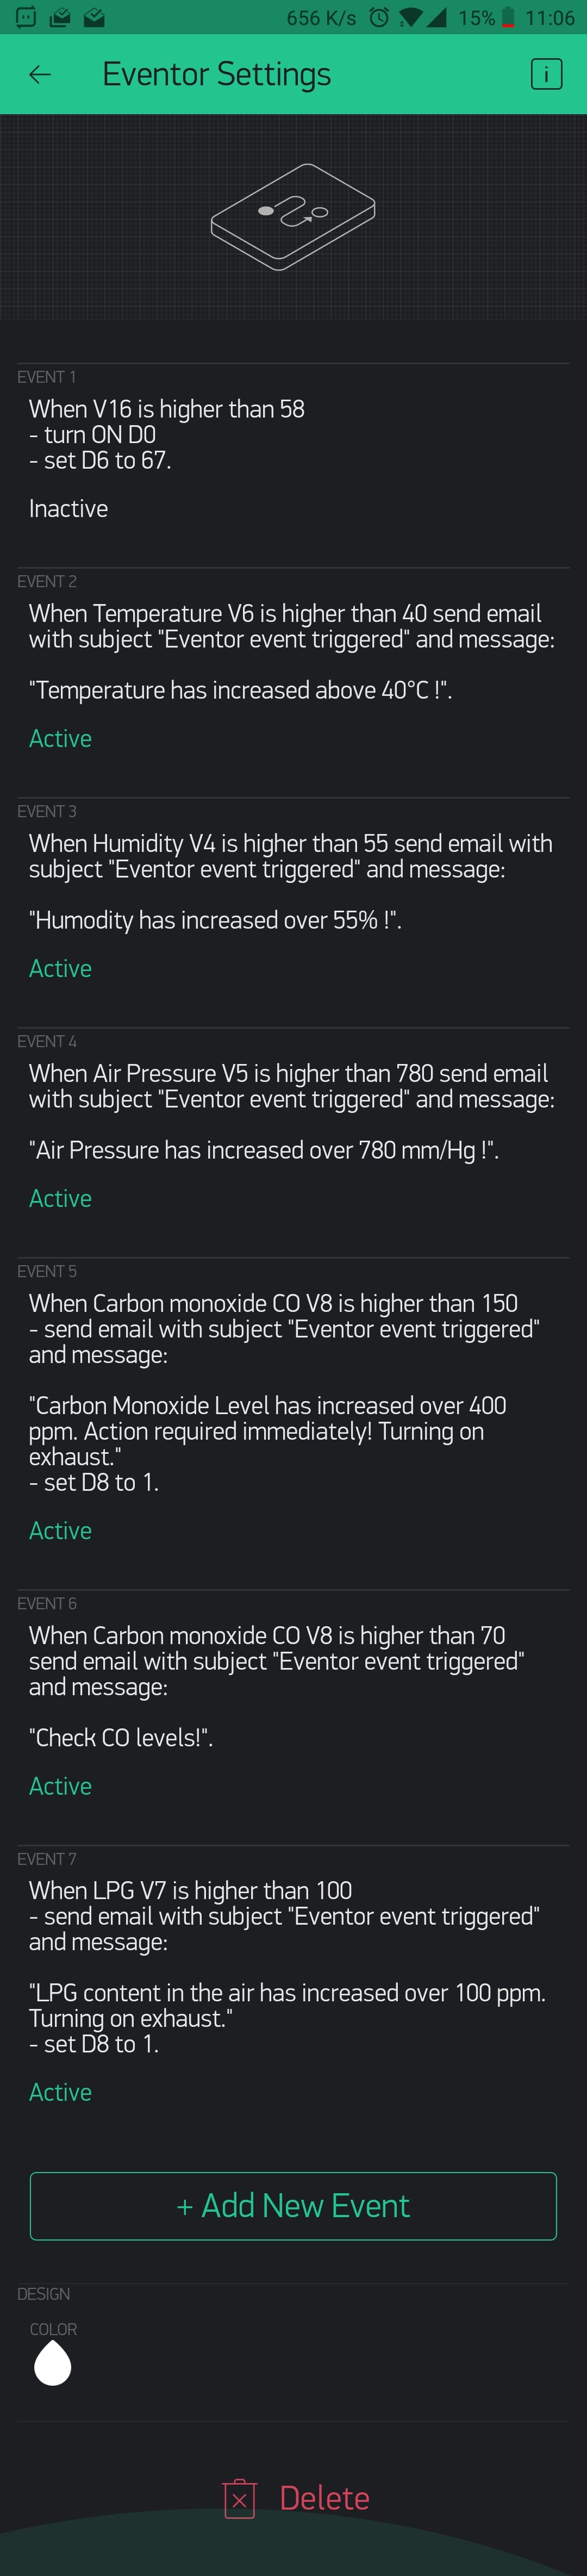 Conditions for Notification